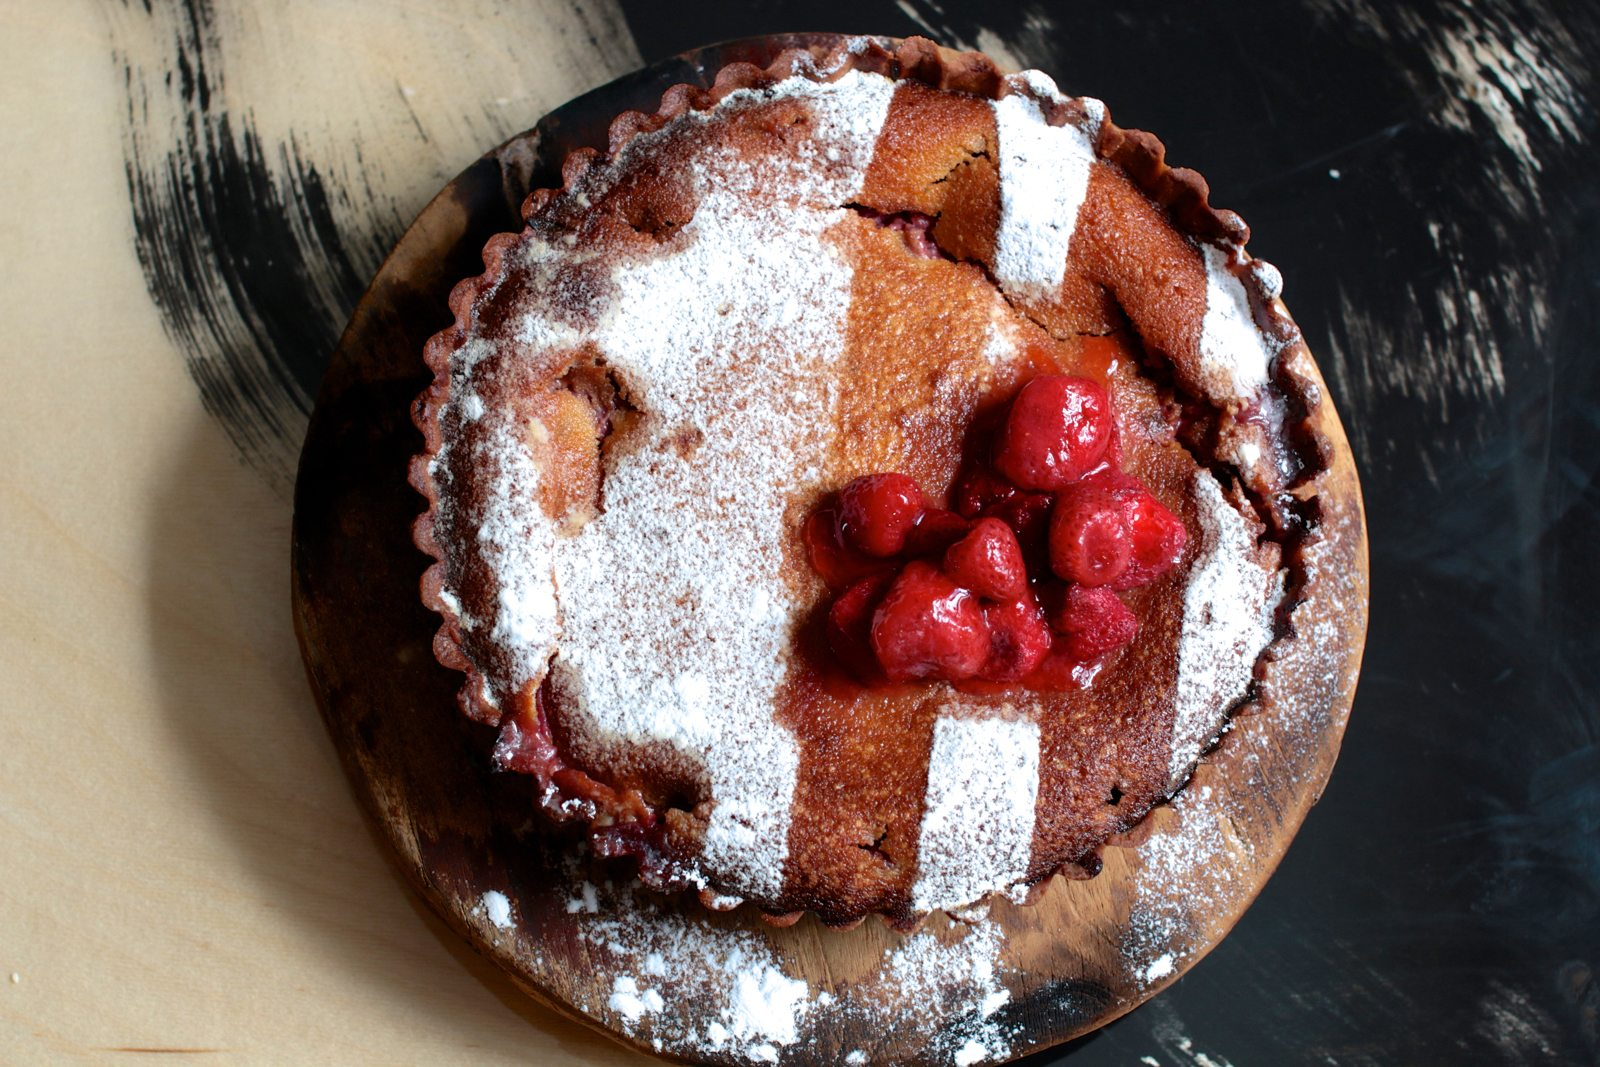 The same goes for this rhubarb and strawberry frangipane.